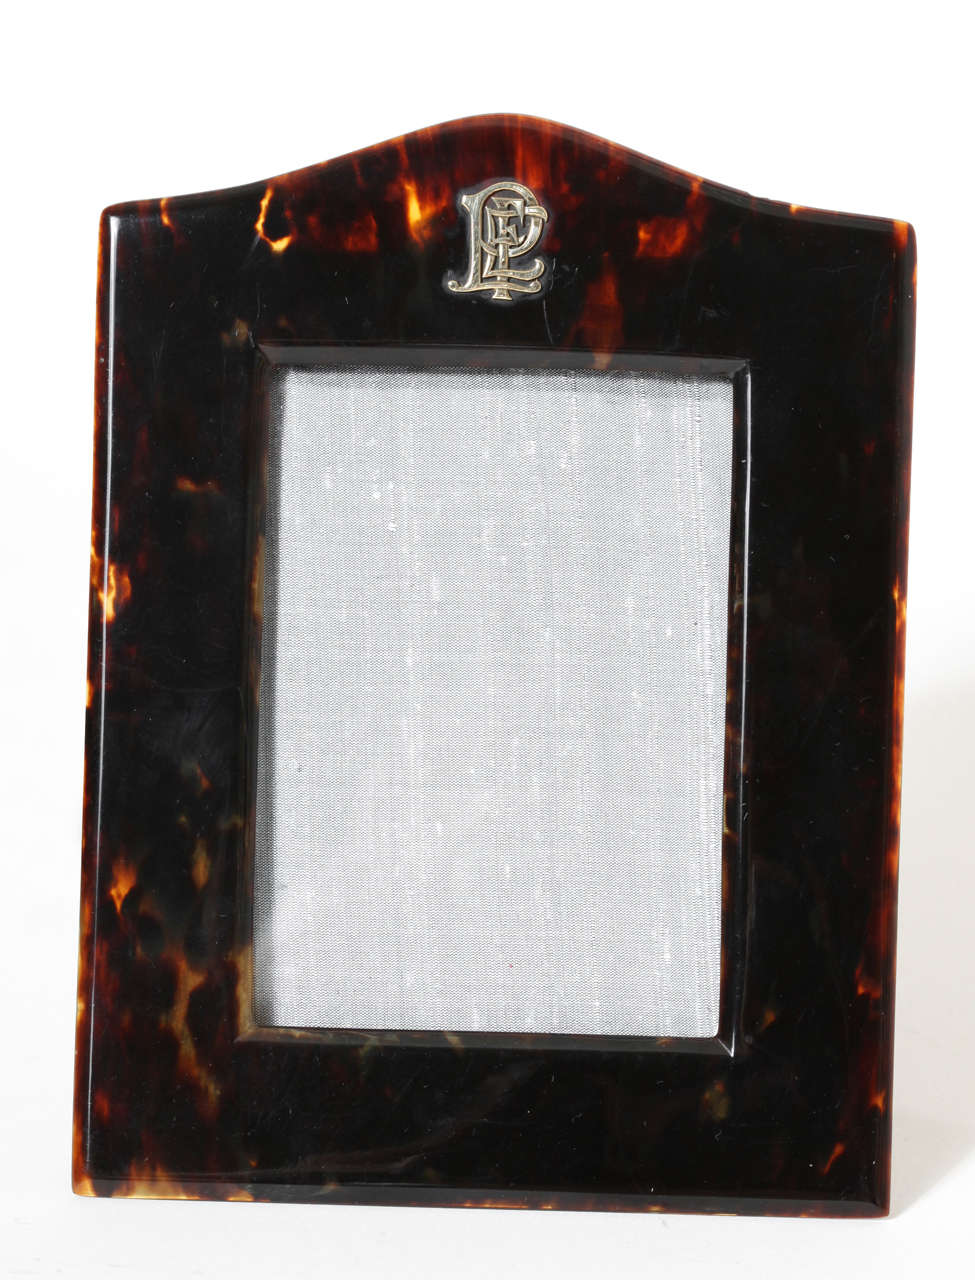 Rectangular photograph frame with arched top and fancy gold FEP monogram. Original leather back and stand. Stamped: ASPREY LONDON on back.